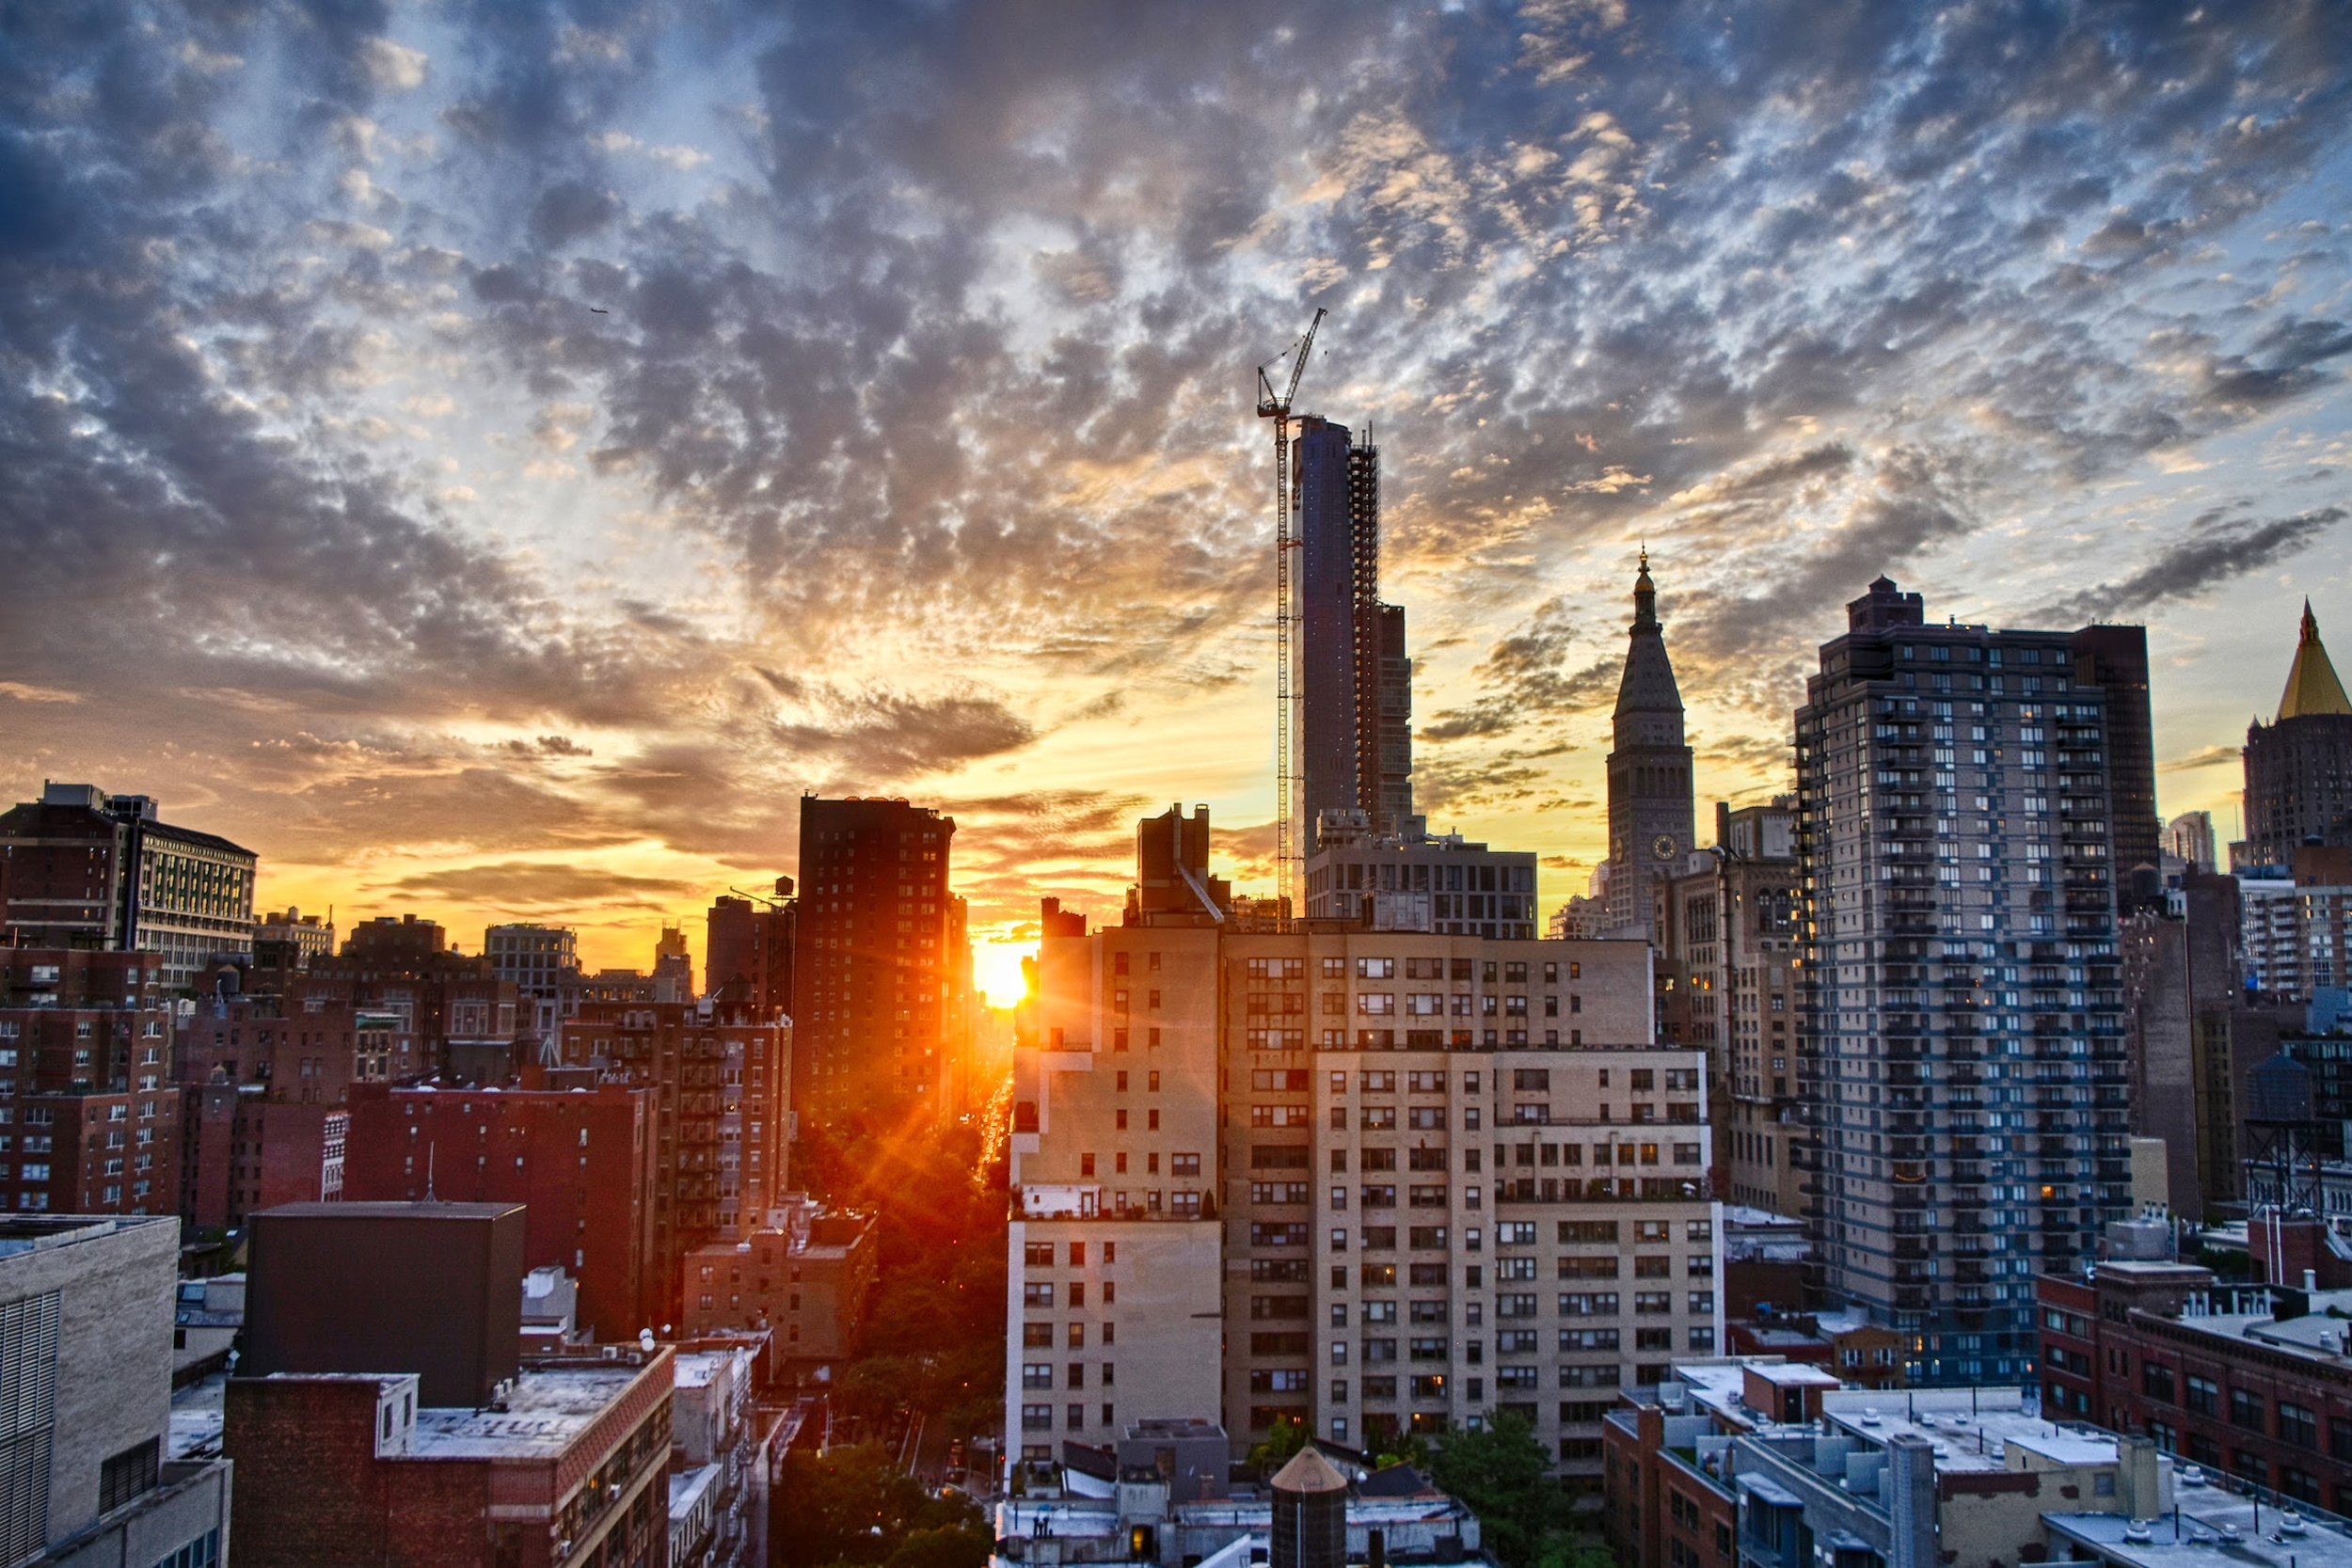 New-York-Sunset-free-to-useiStock-547026148-1.jpg